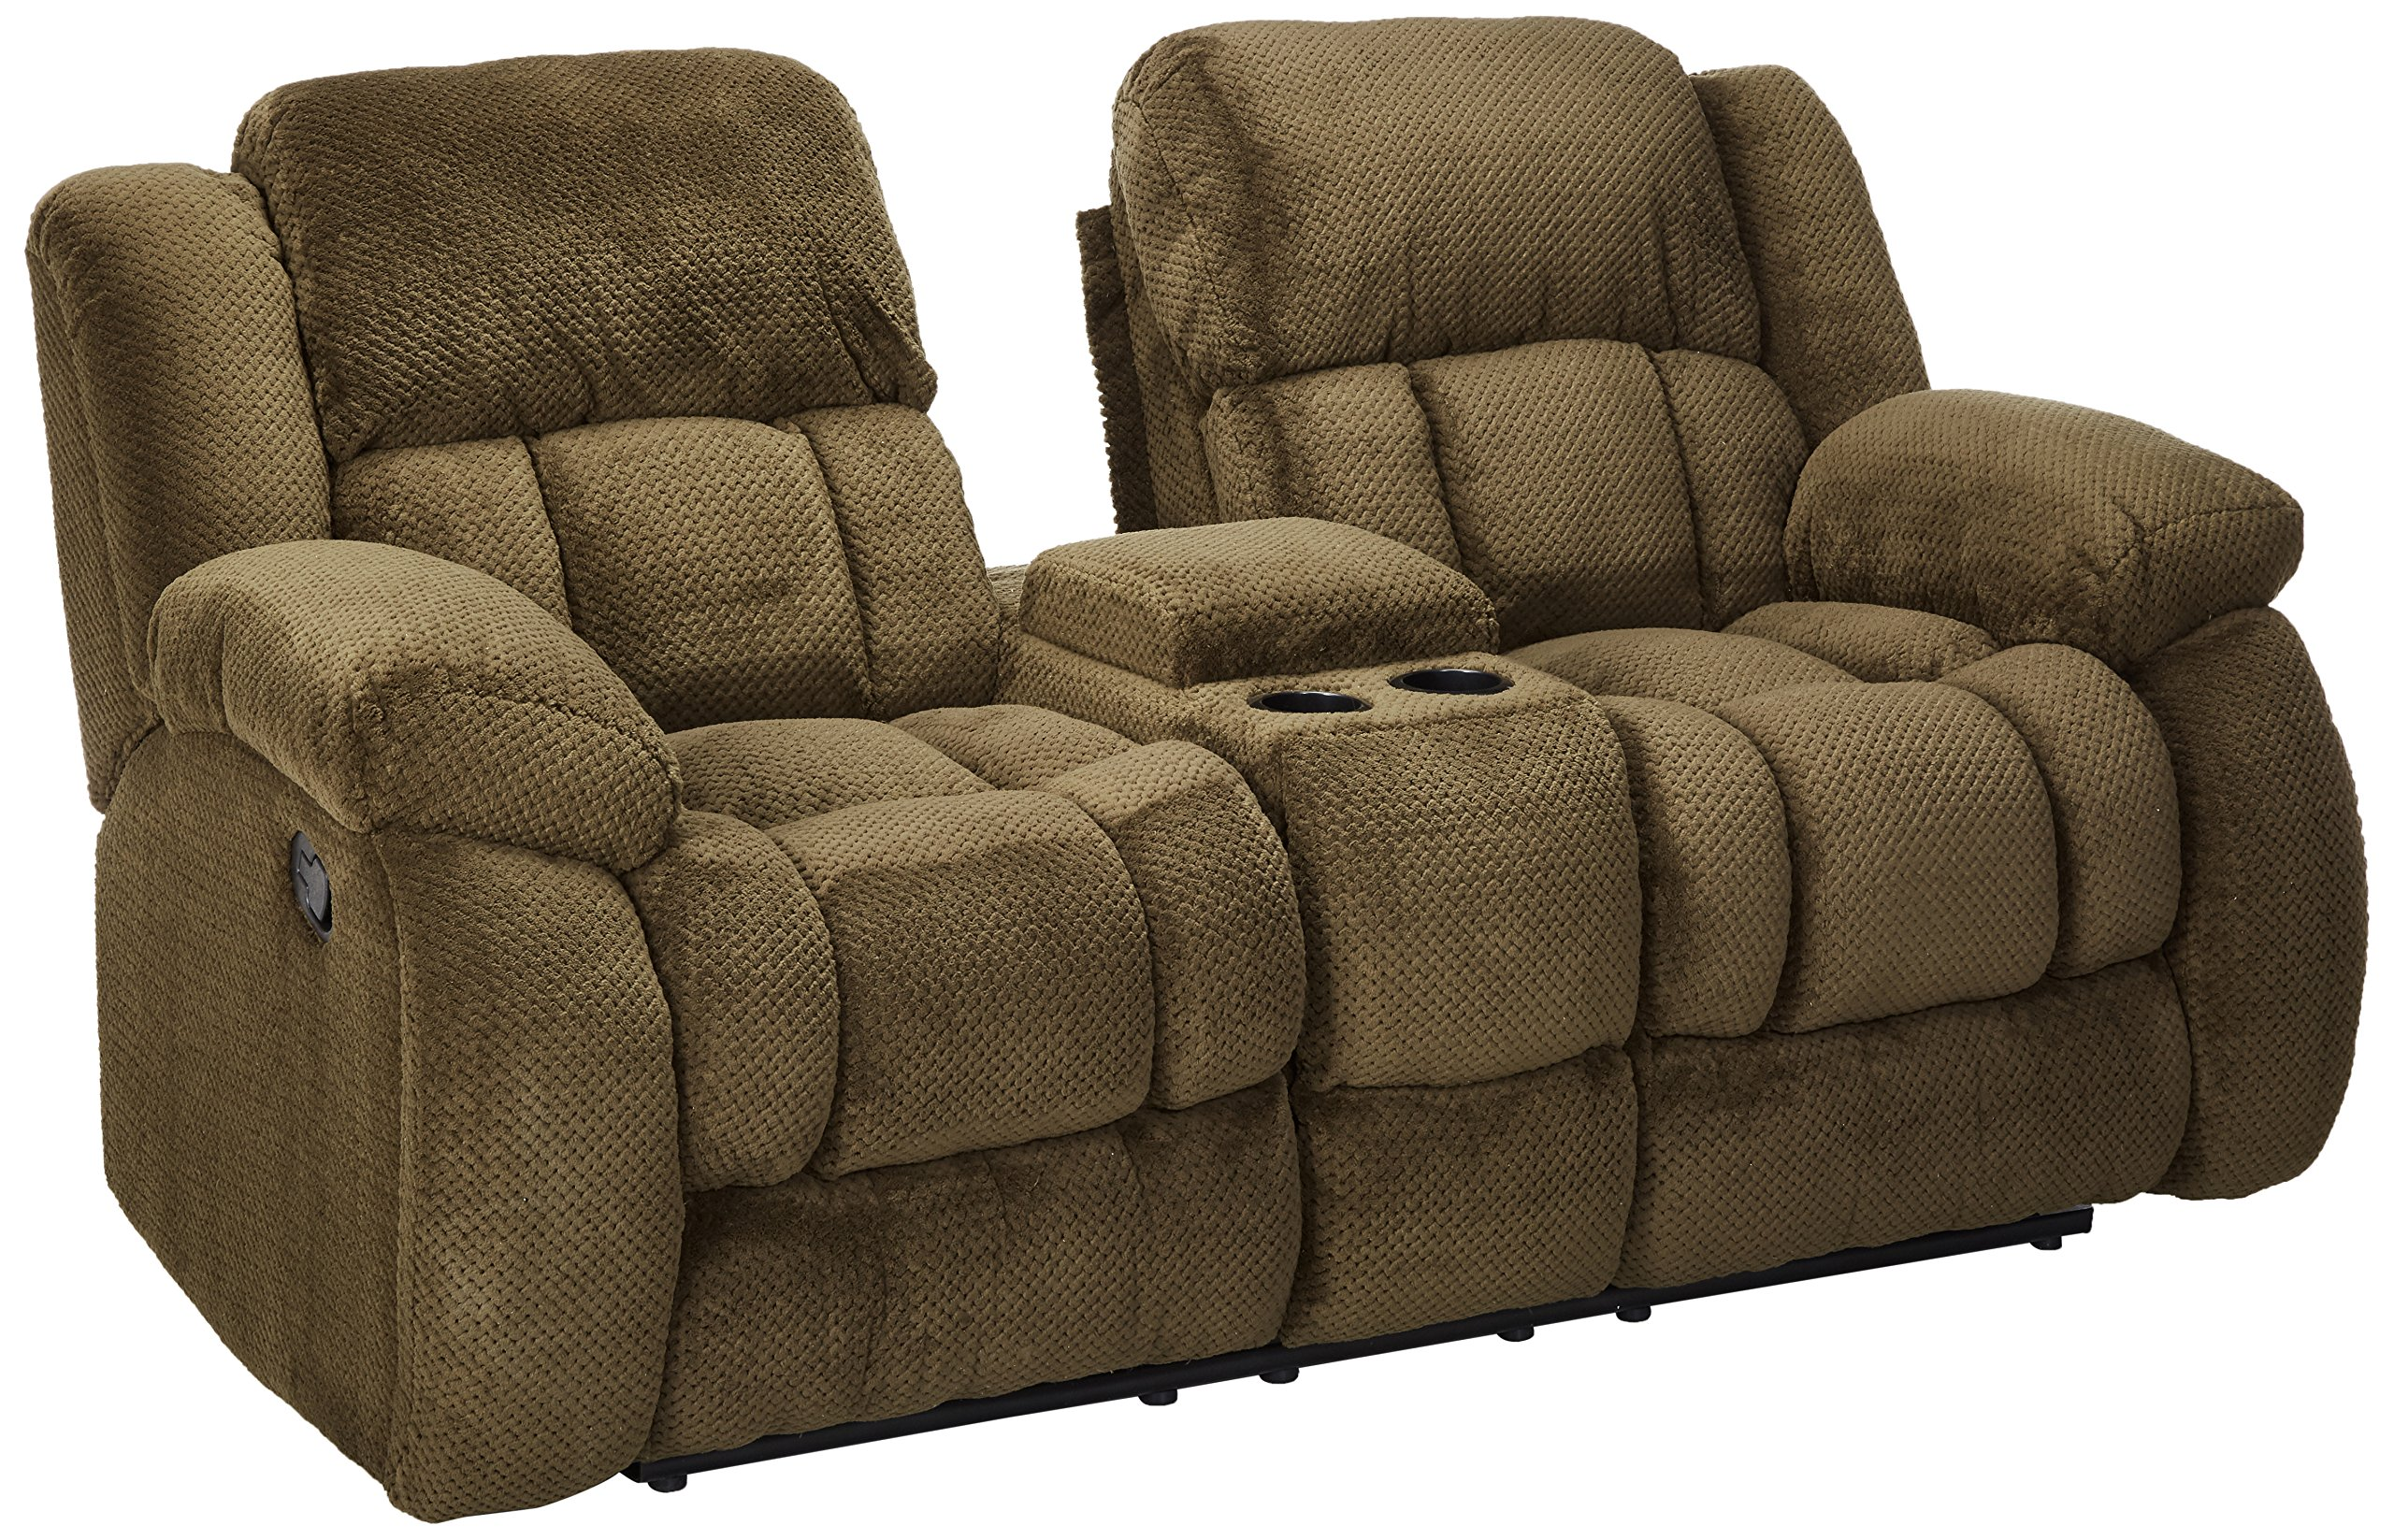 Coaster Home Furnishings Coaster 601925 Motion Loveseat, Brown, Weissman Motion Collection